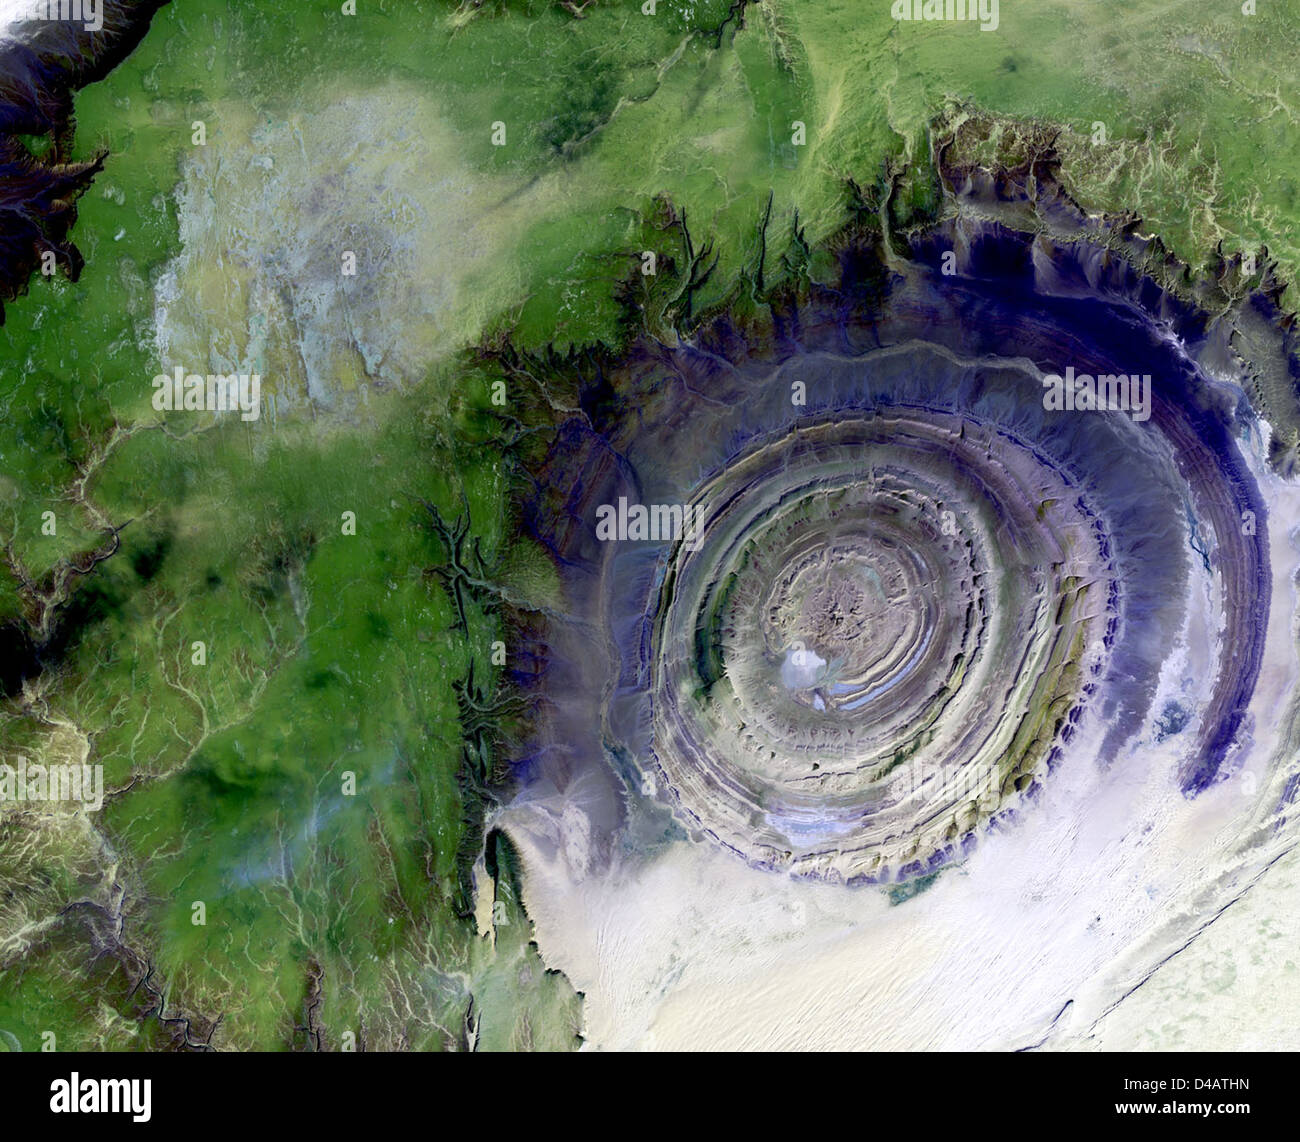 Richat Structure - Stock Image